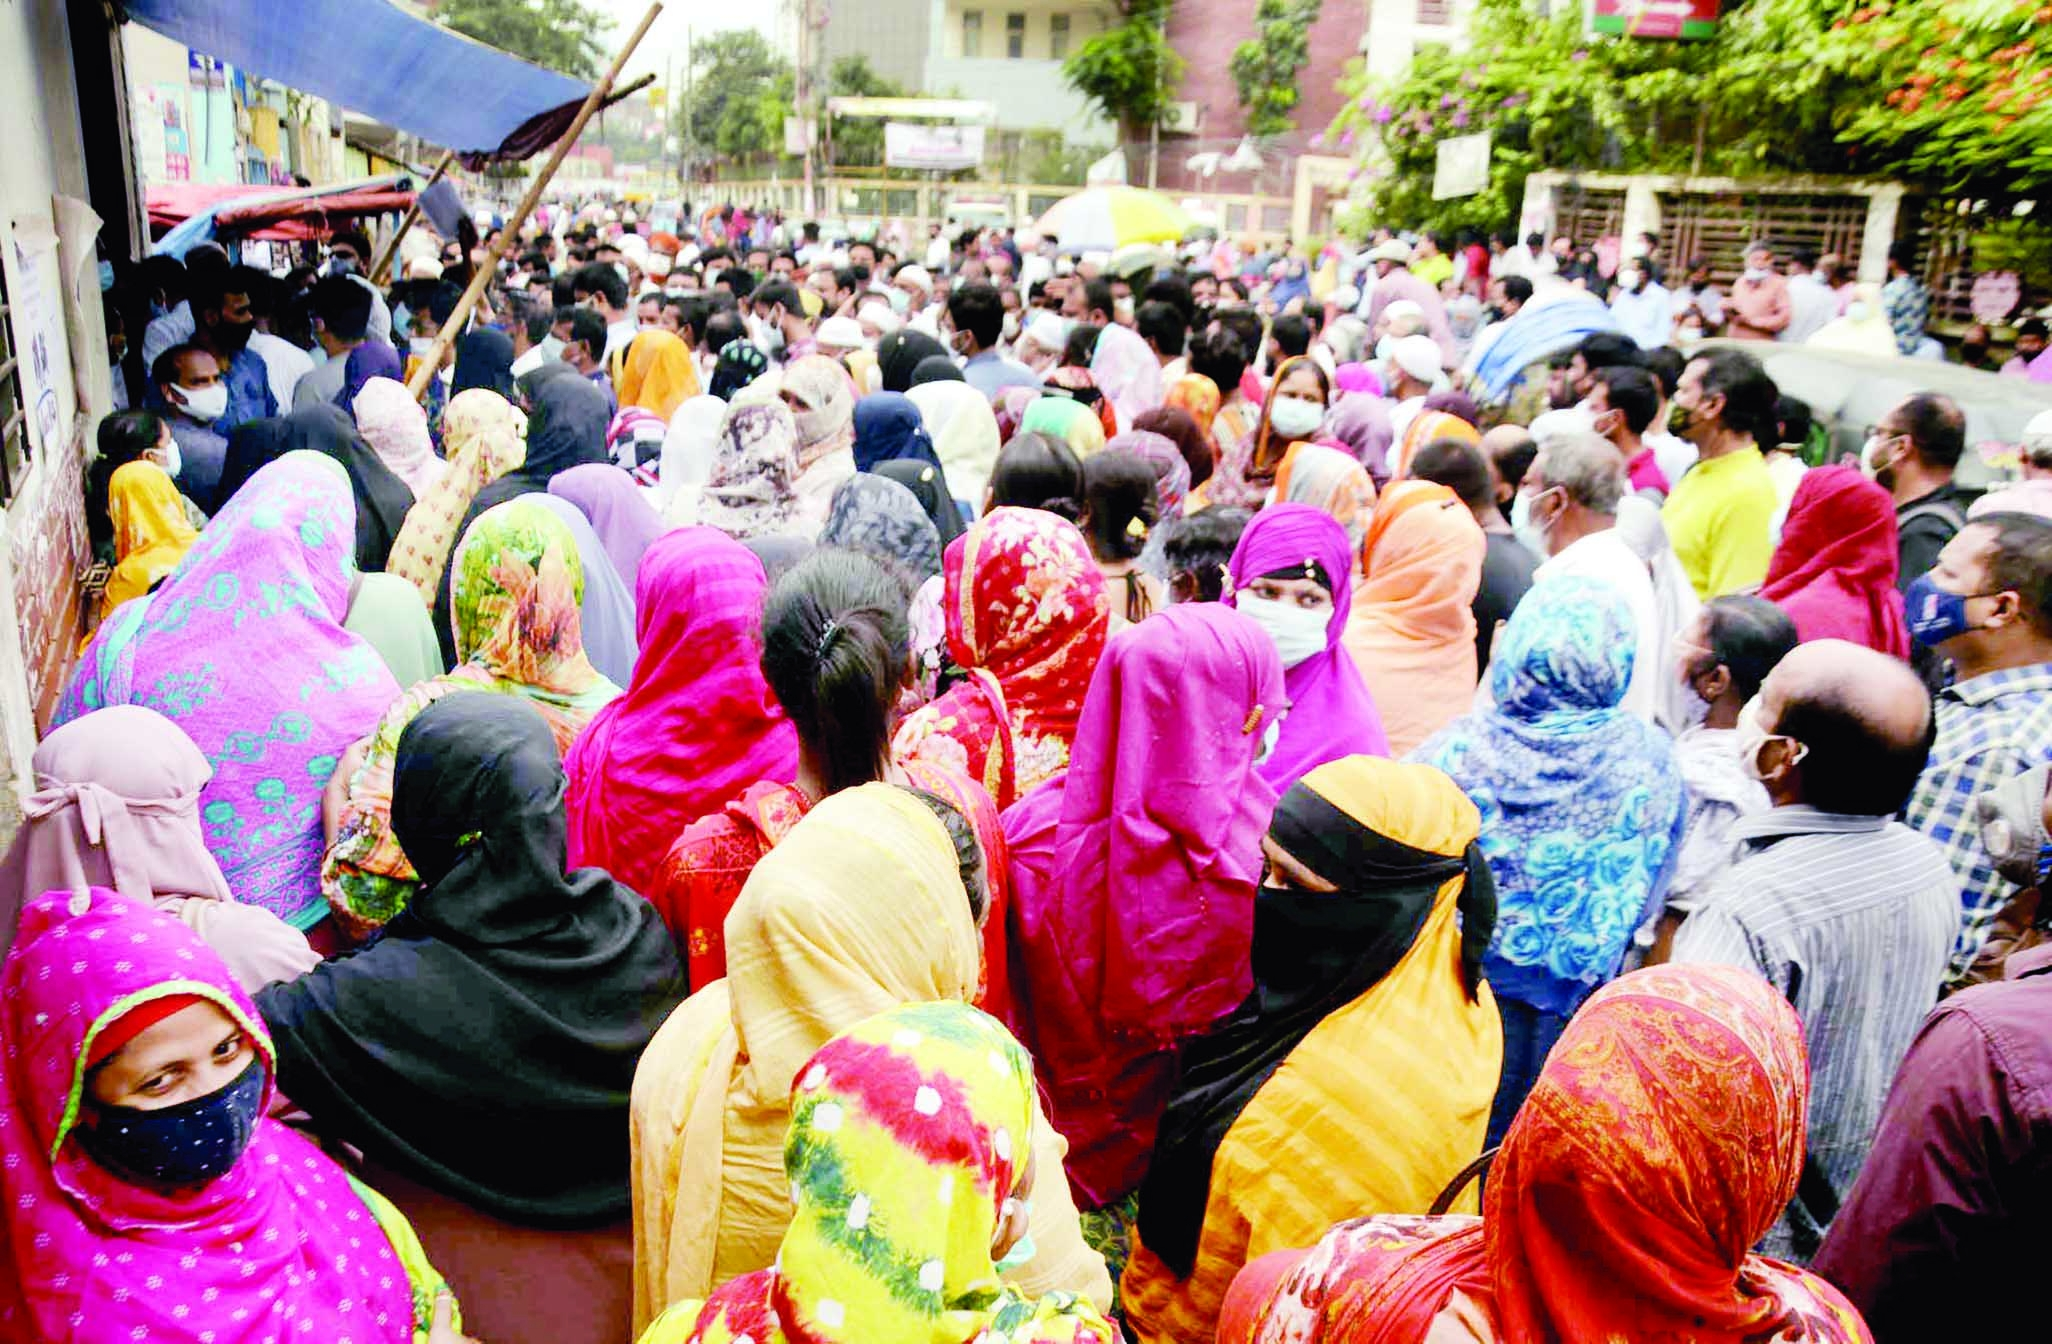 Hundreds of people crowd in front of a Covid-19 vaccine centre at Mugda in the capital on Tuesday.